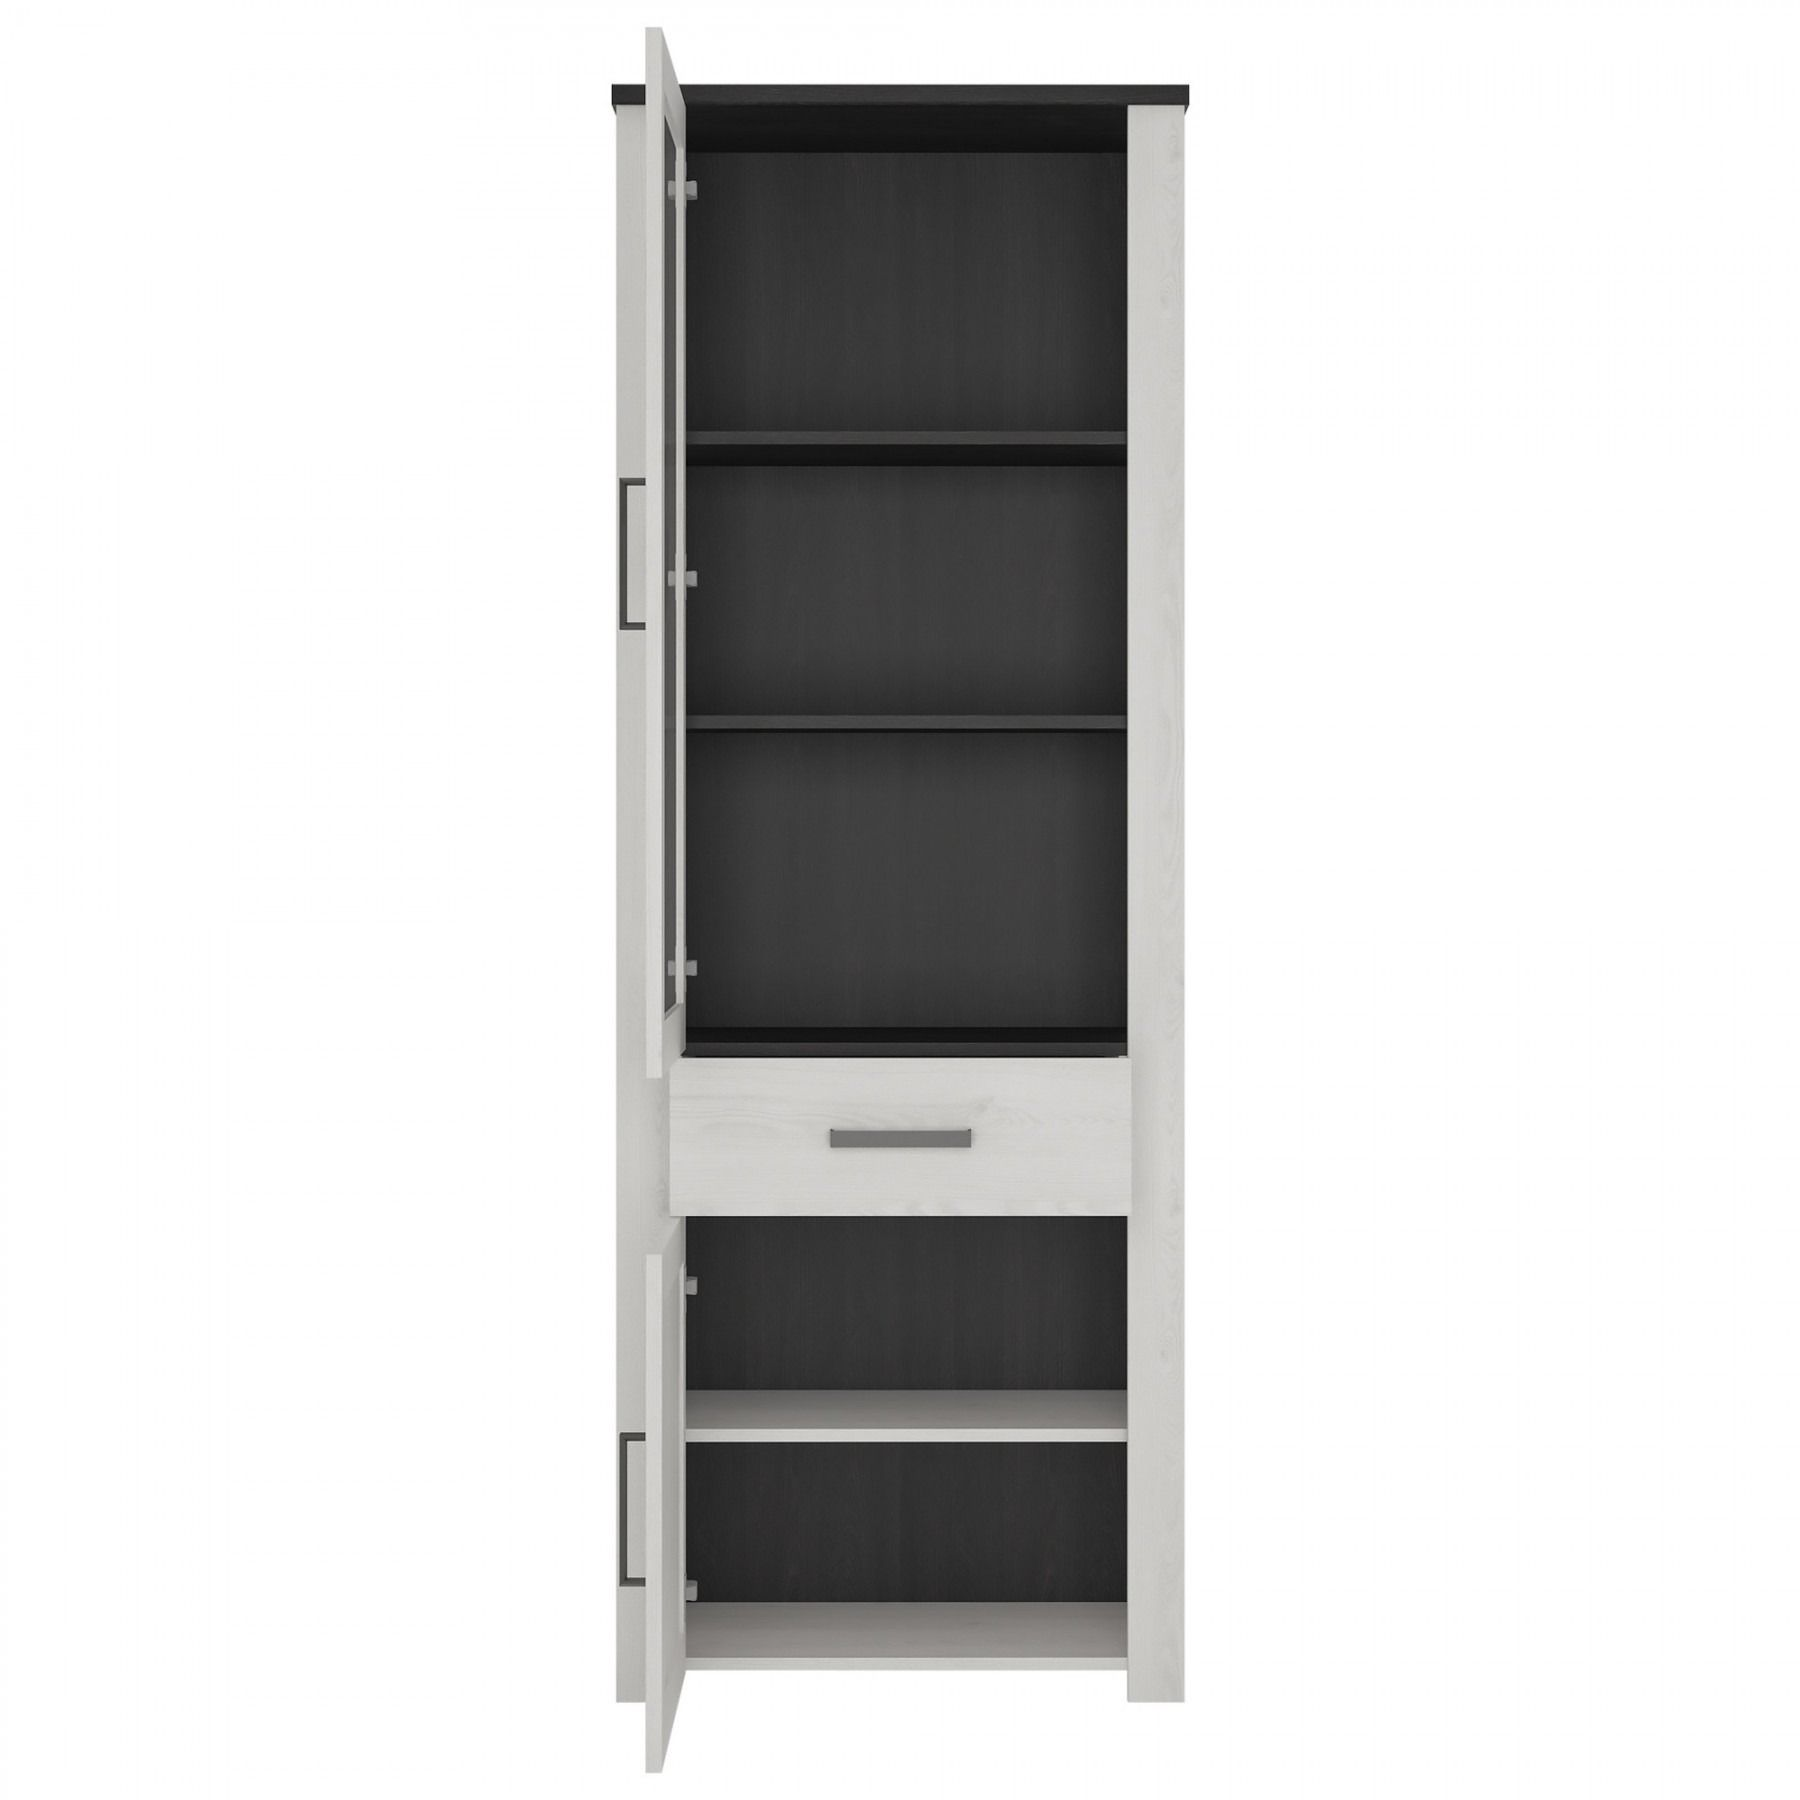 Provence Tall Narrow Glazed Cabinet 2 Door 1 Drawer   Provence   By  Collection